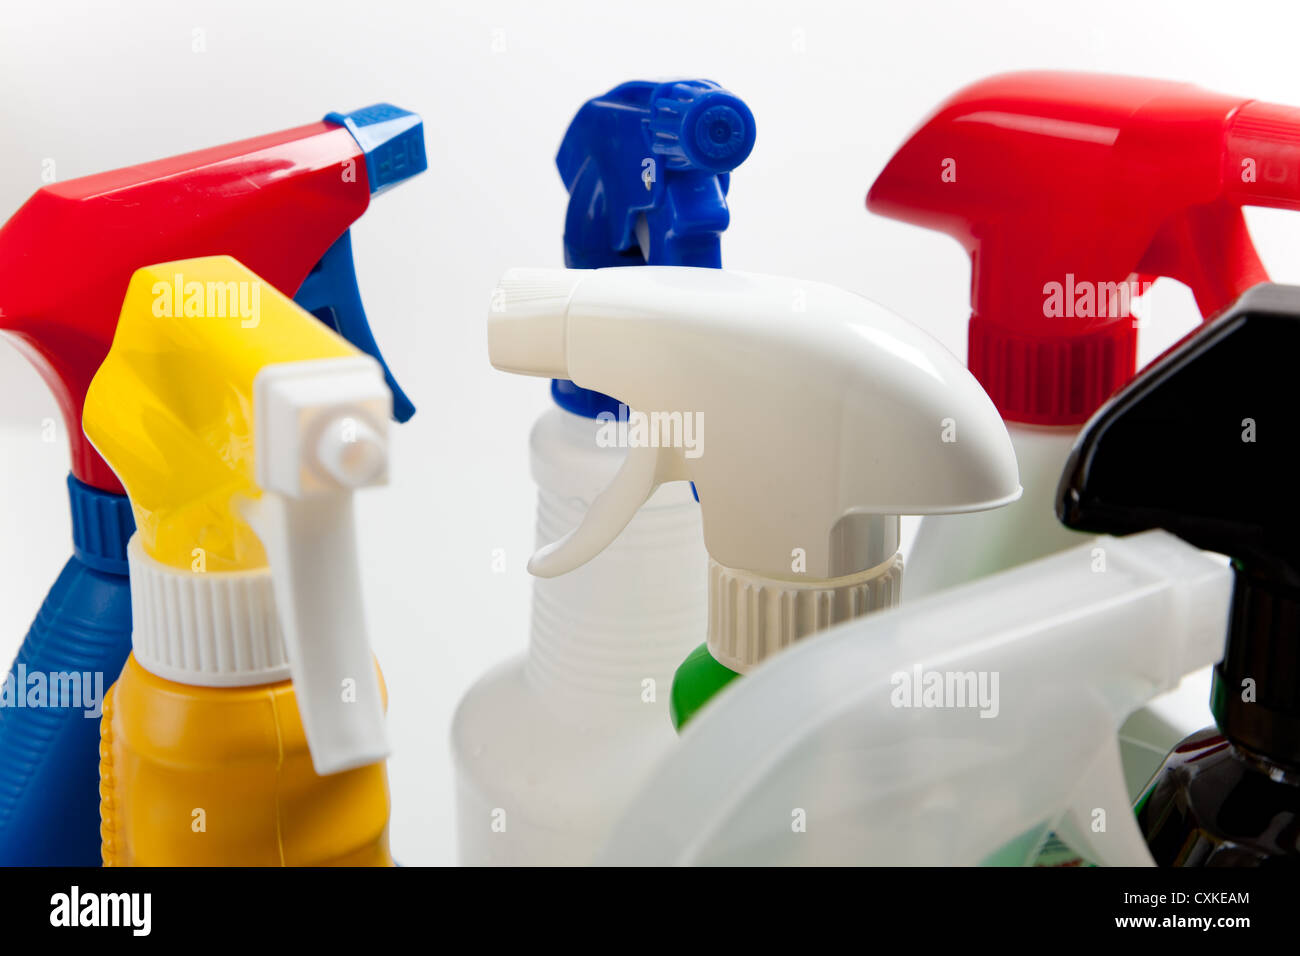 Cleaning spray bottle with multicolored nozzles Stock Photo